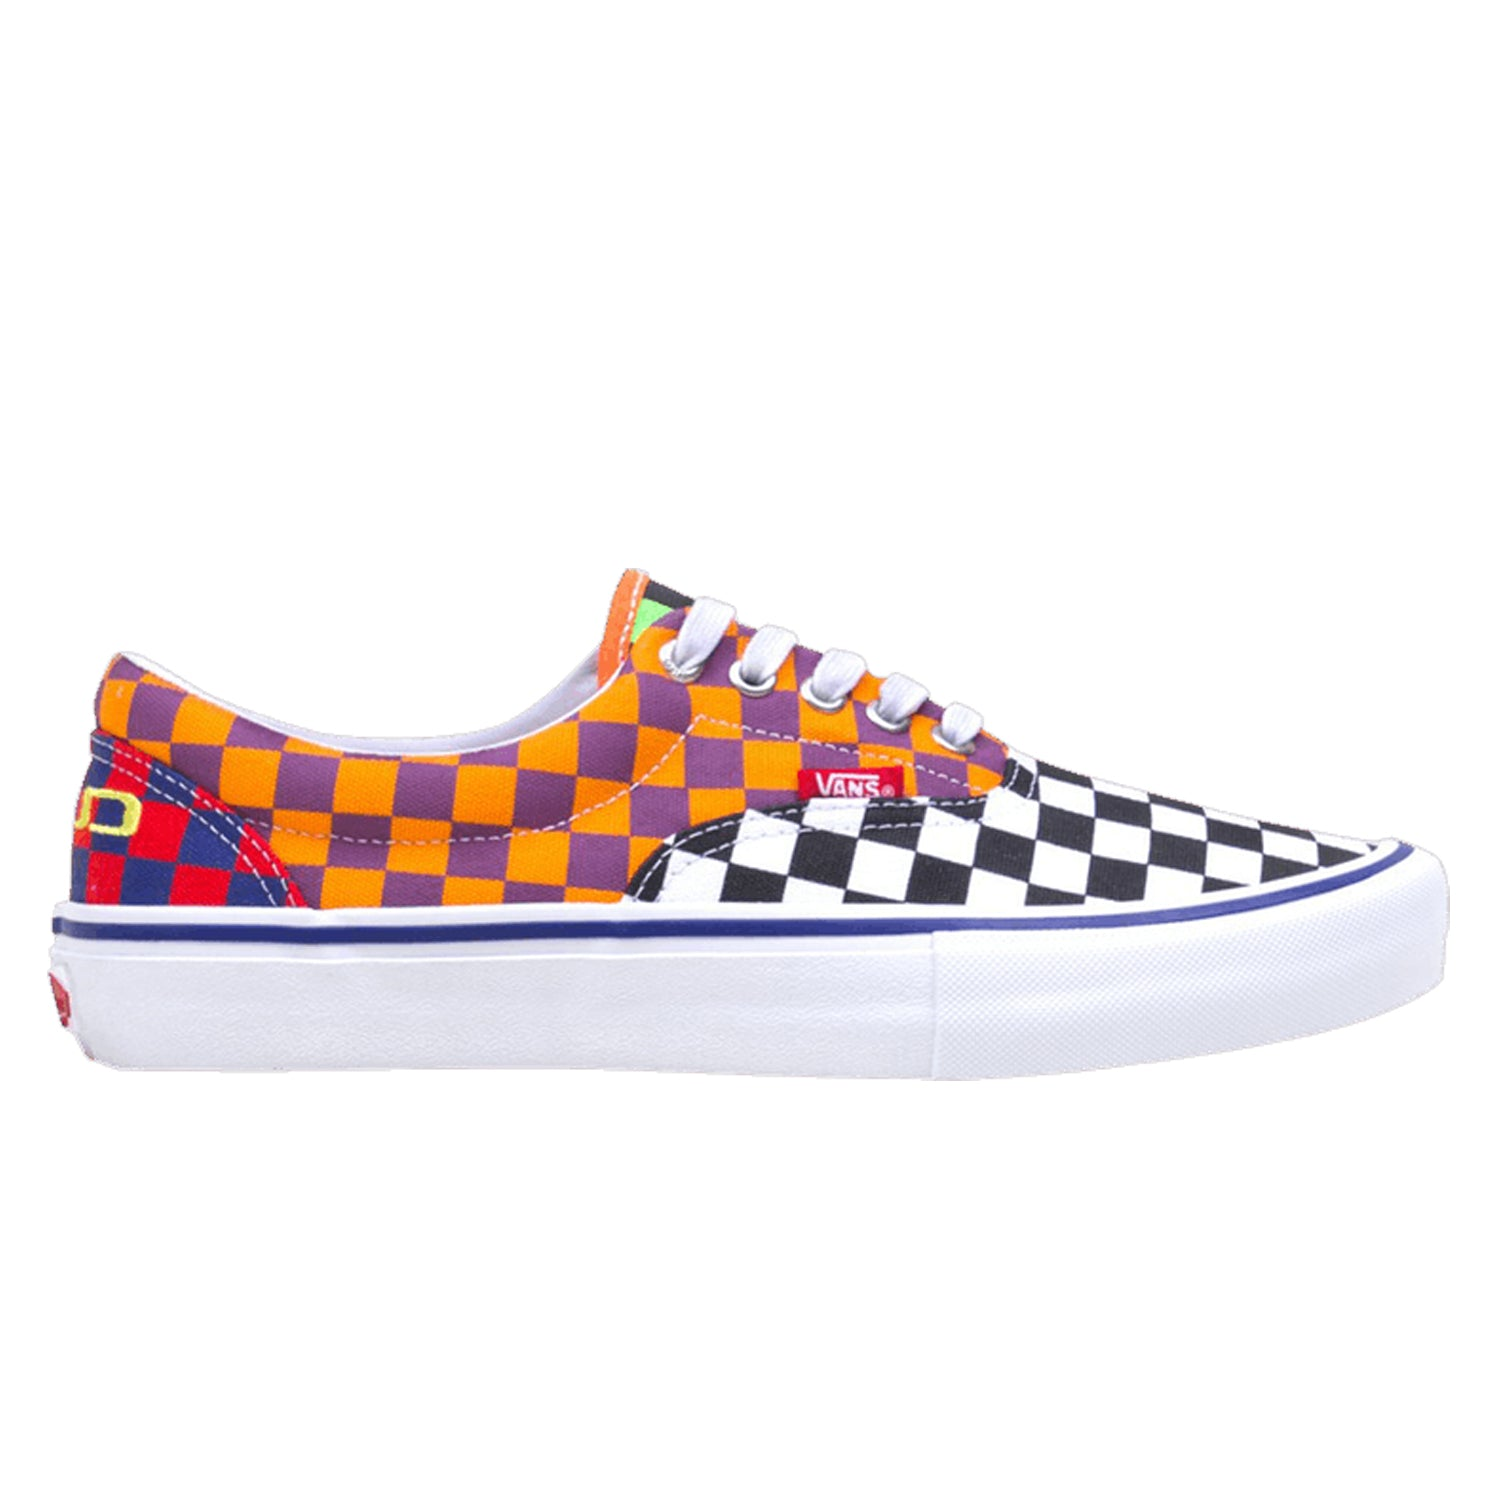 Vans X Club Gear Era Pro Multi Check